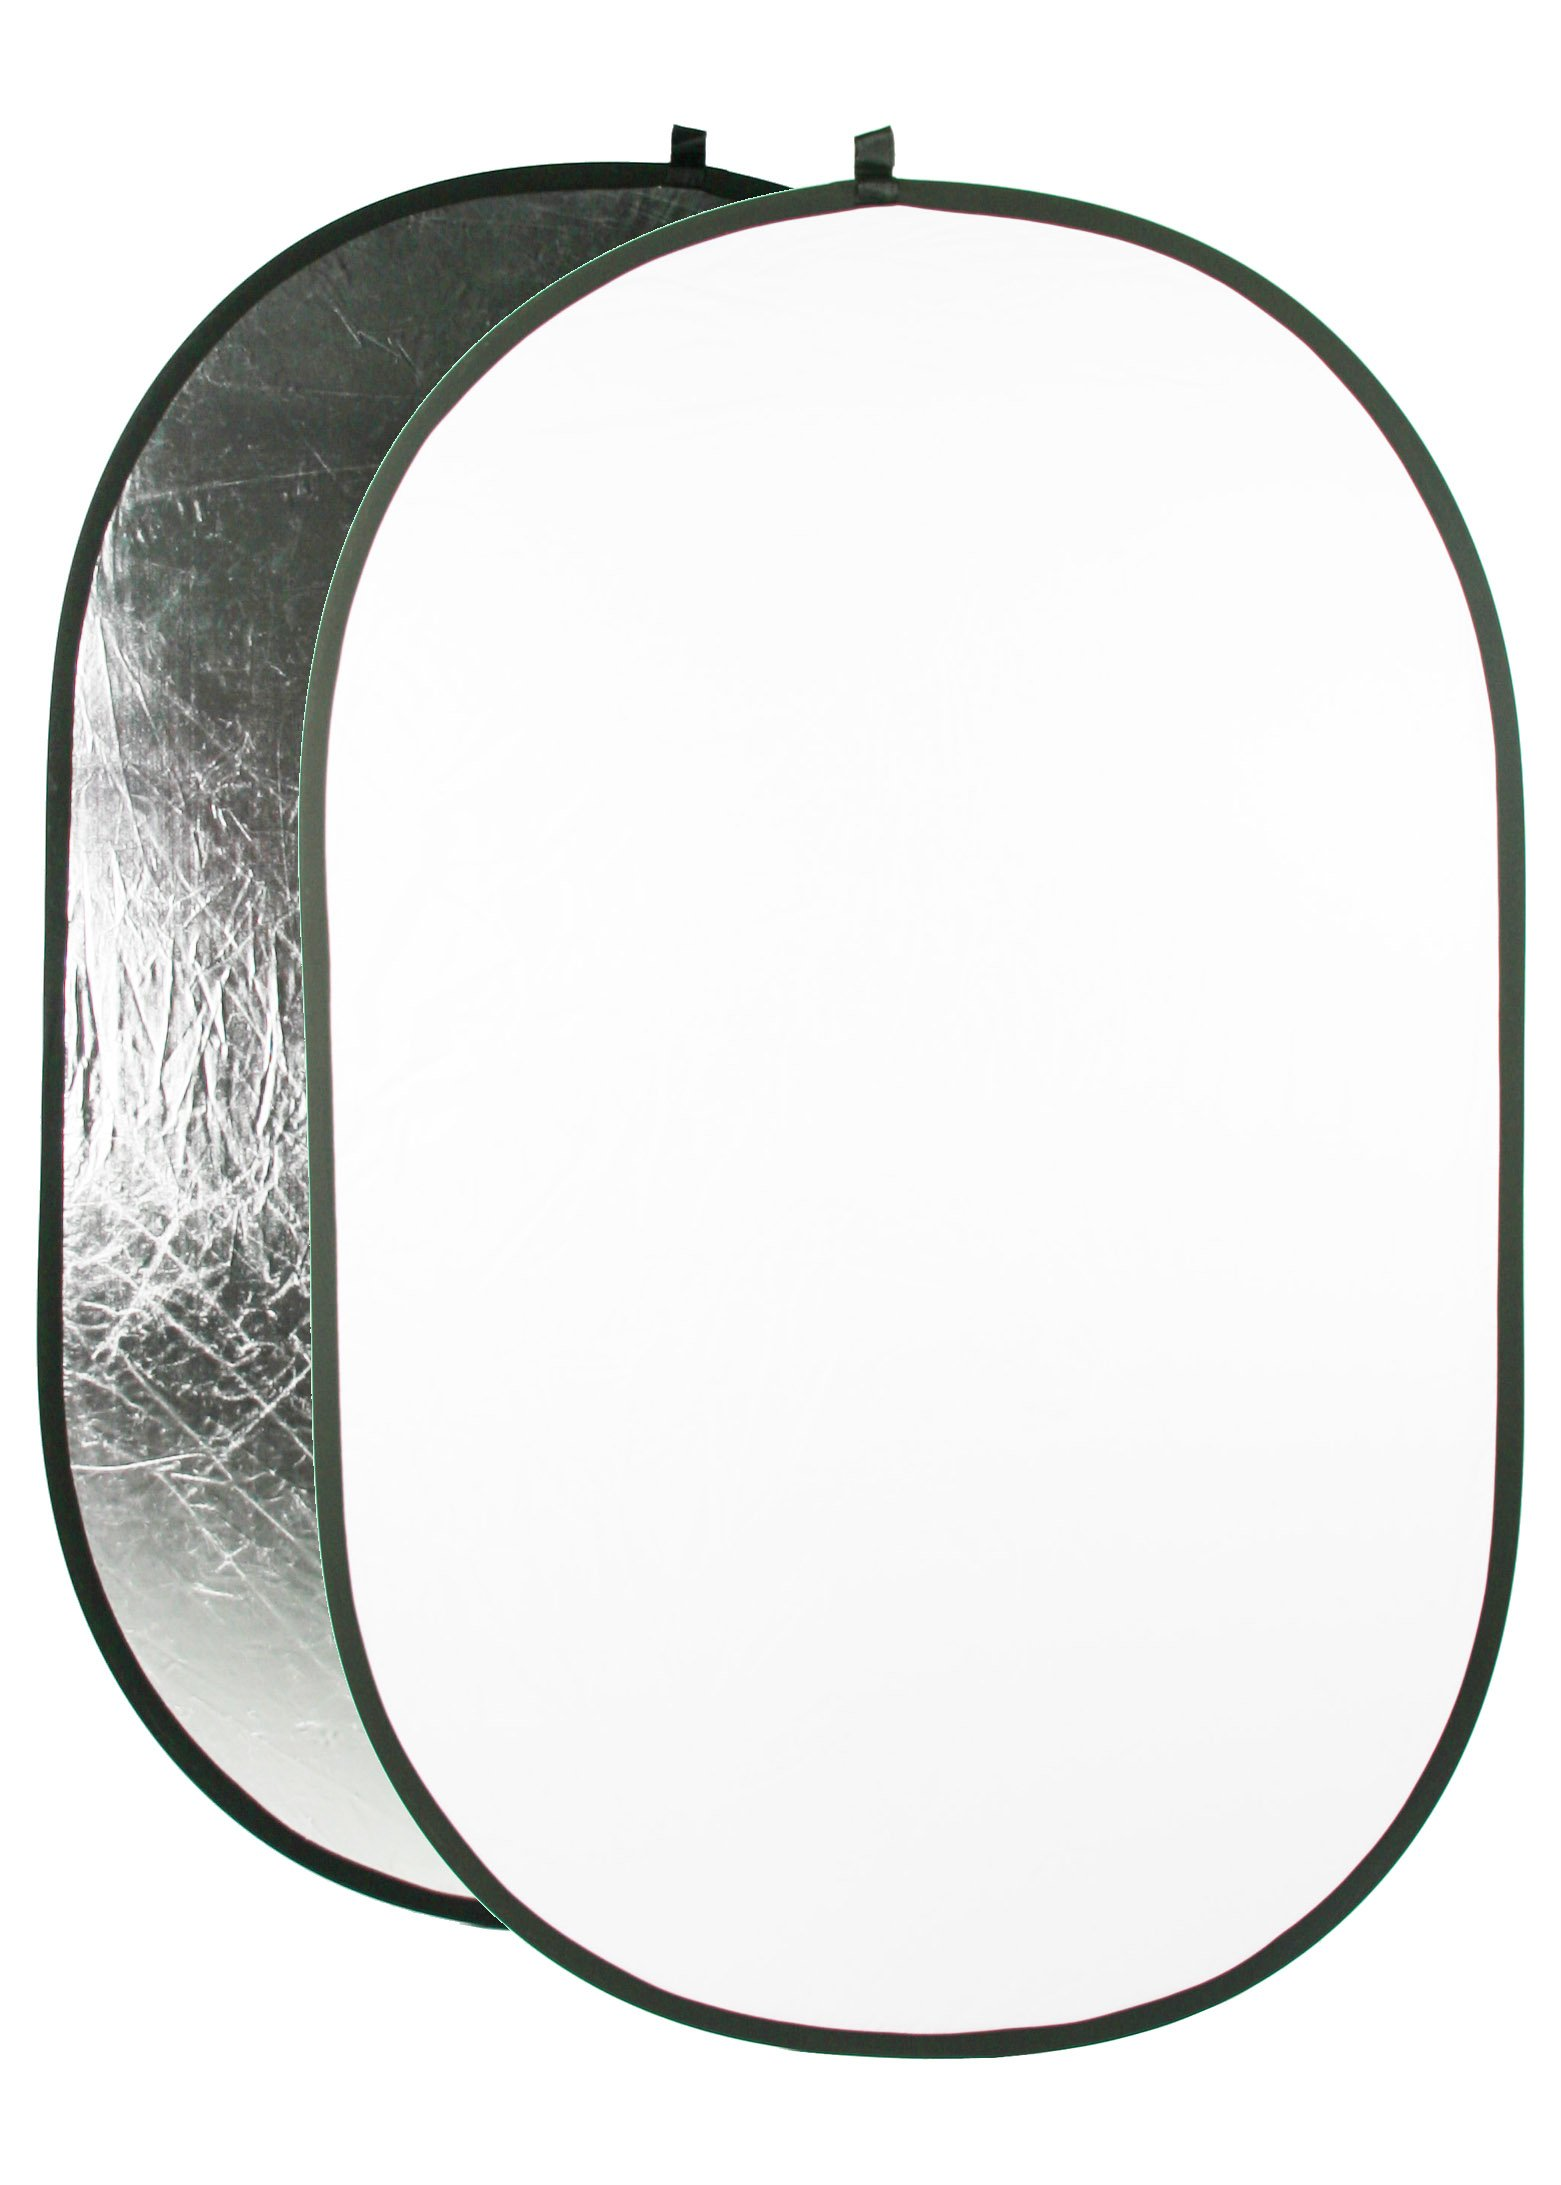 ePhoto Collapsible Photo Photography Video Studio Oval Reflector Disc - Silver/White 43'' x 66'' REF4366SW by ePhoto